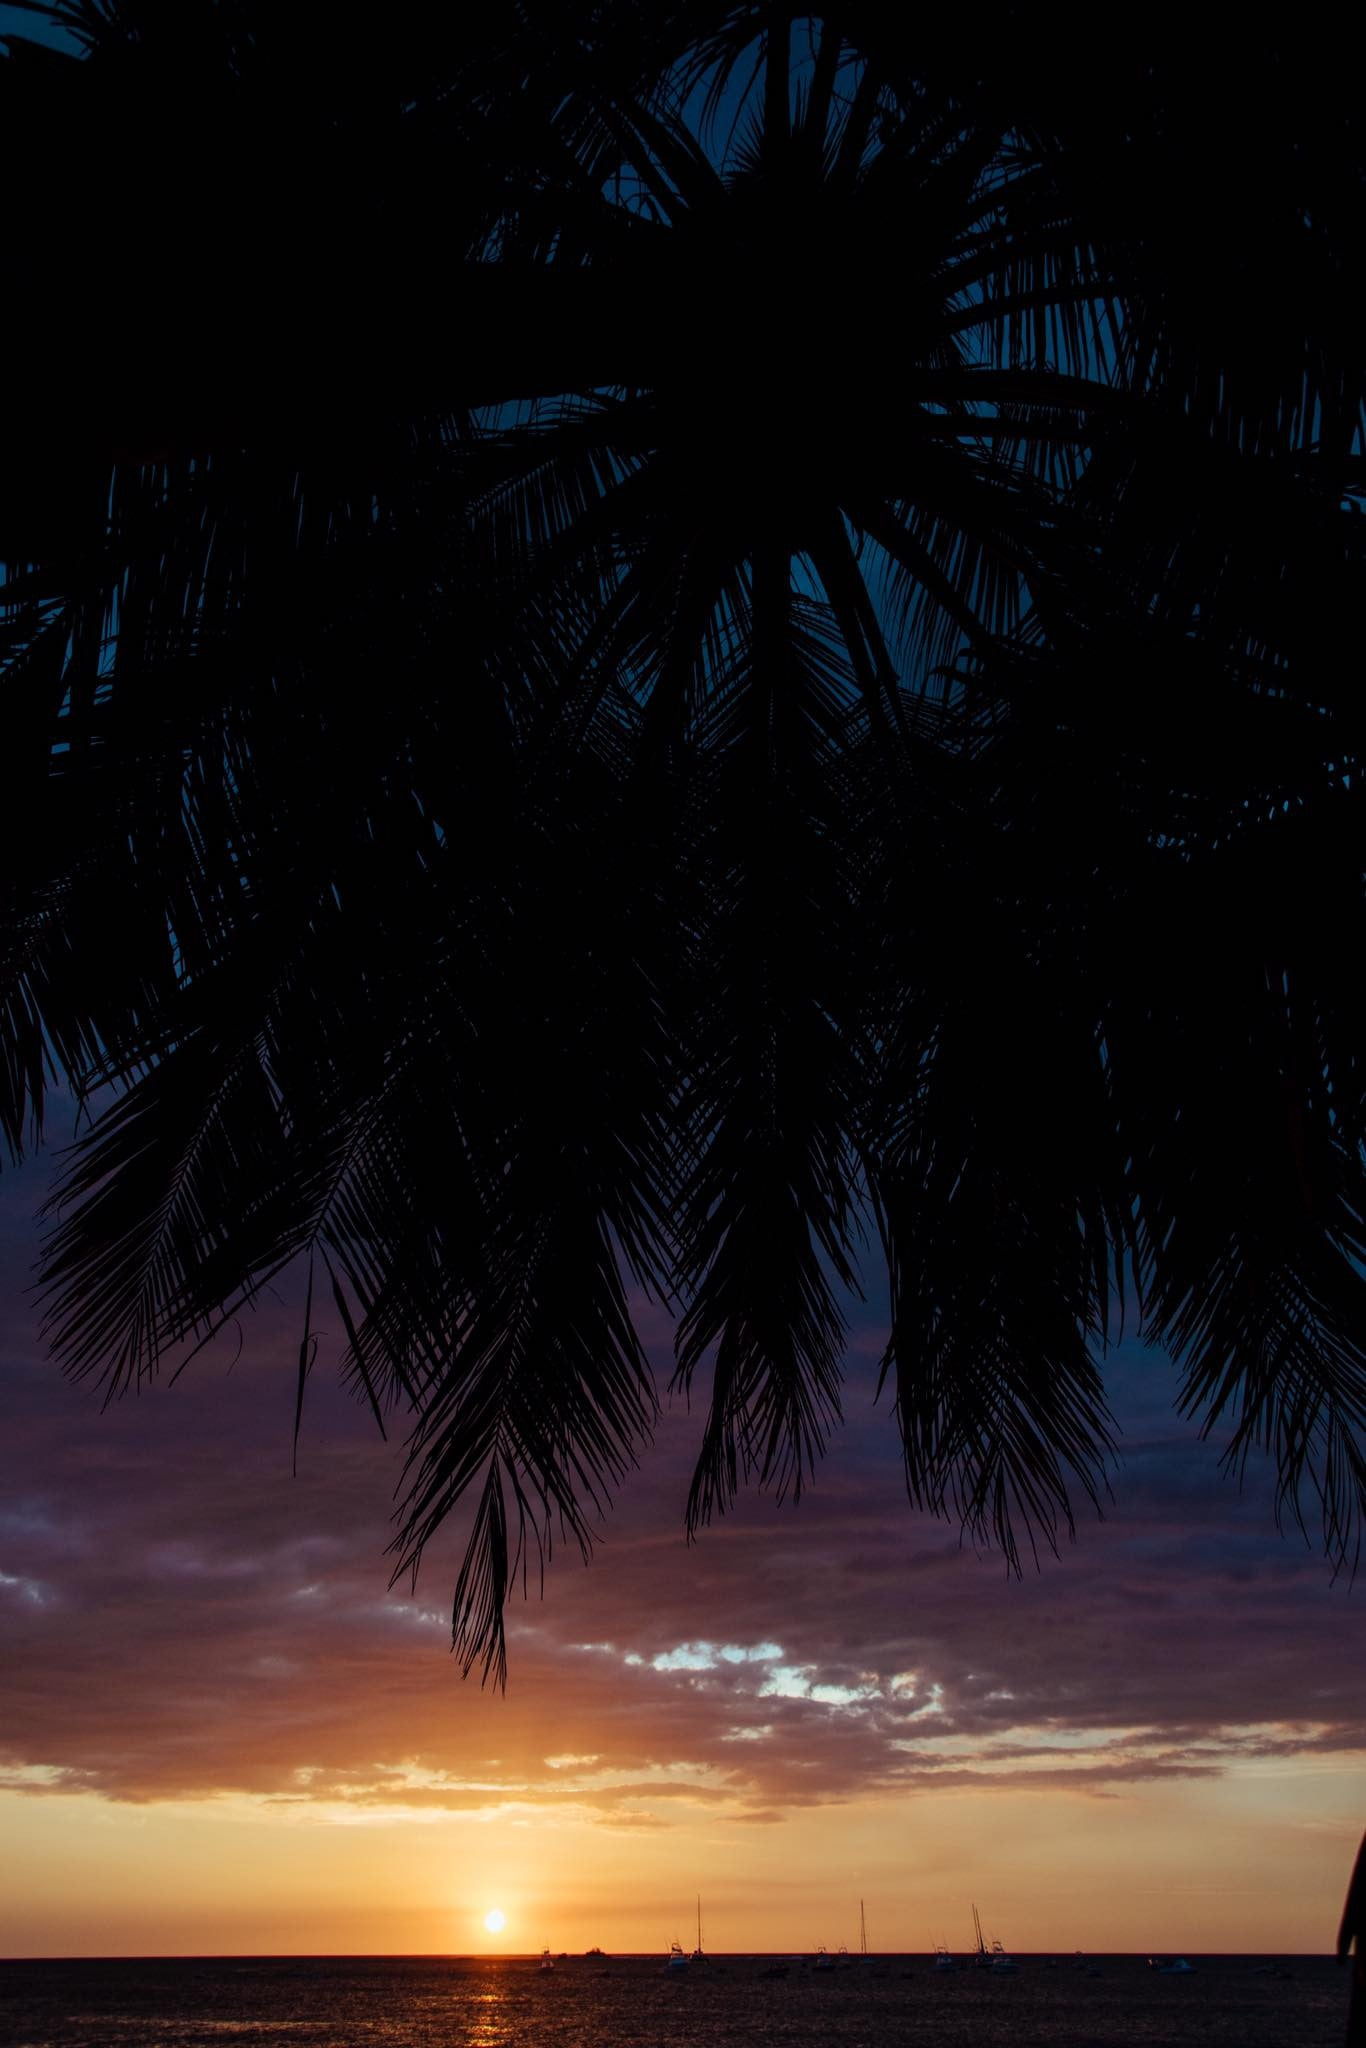 Gorgeous sunset in Tamarindo, Costa Rica seen through a palm tree. Photographed by Kristen M. Brown, Samba to the Sea. Sunset print available at The Sunset Shop.